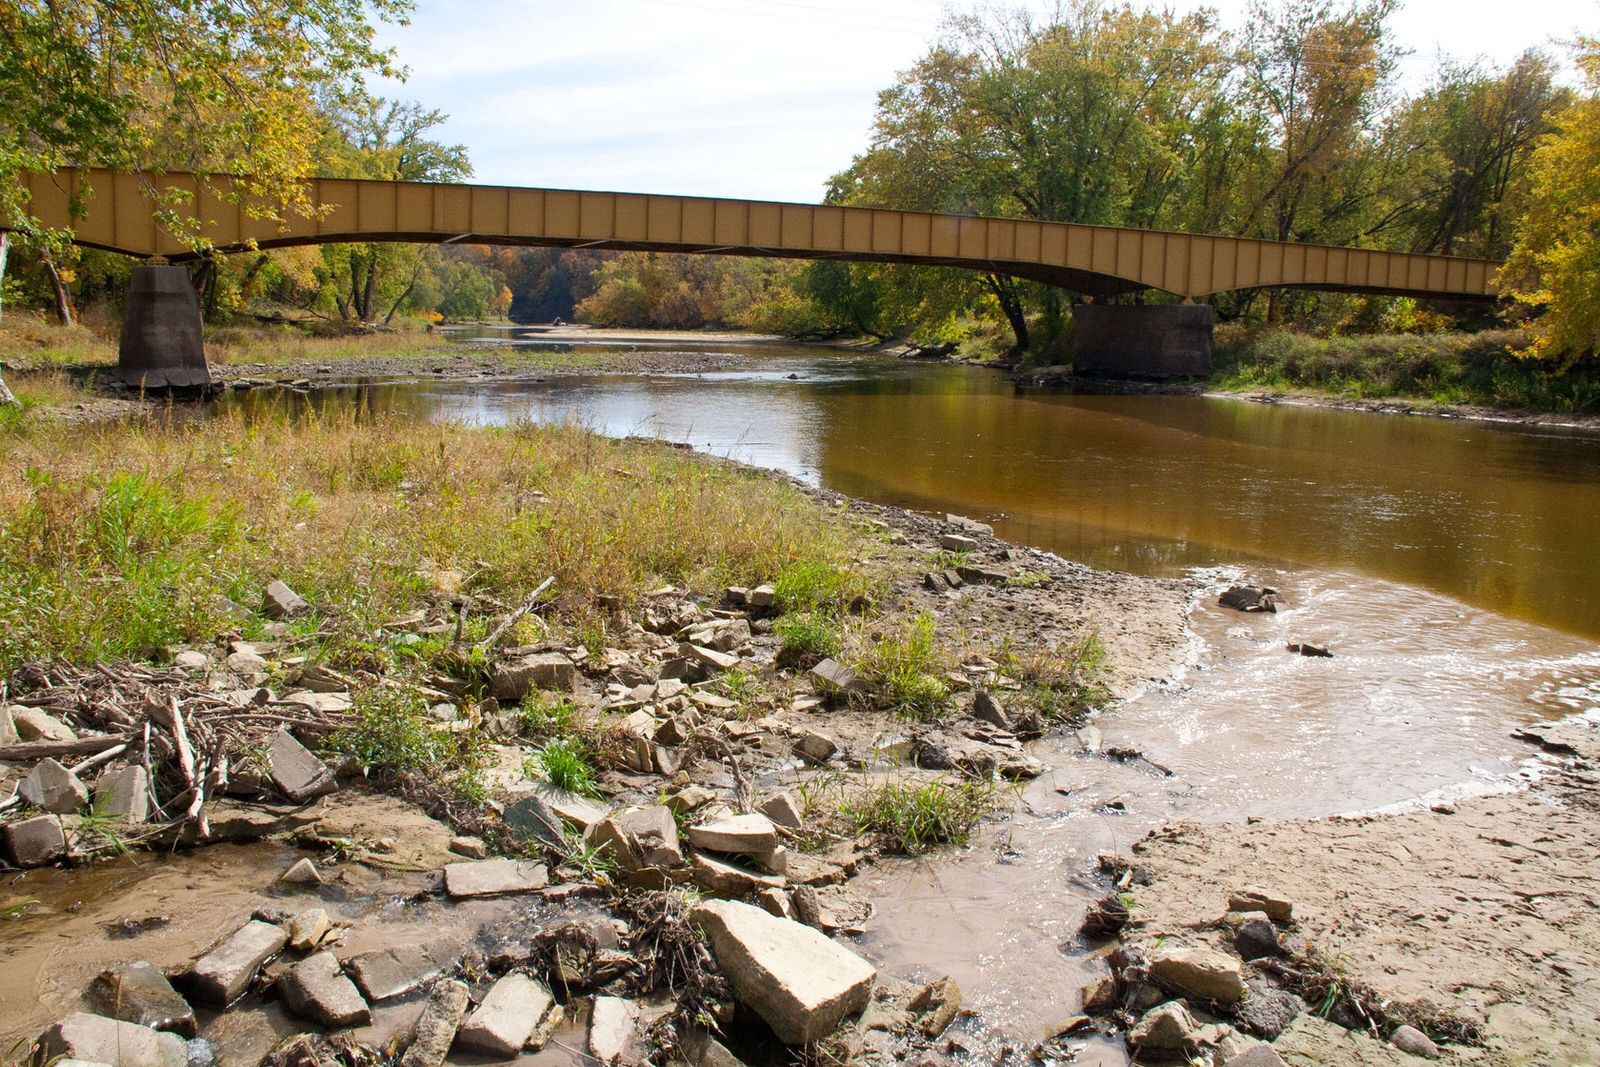 photo: Matsell Bridge. Photo by ArtisticAbode/wiki.